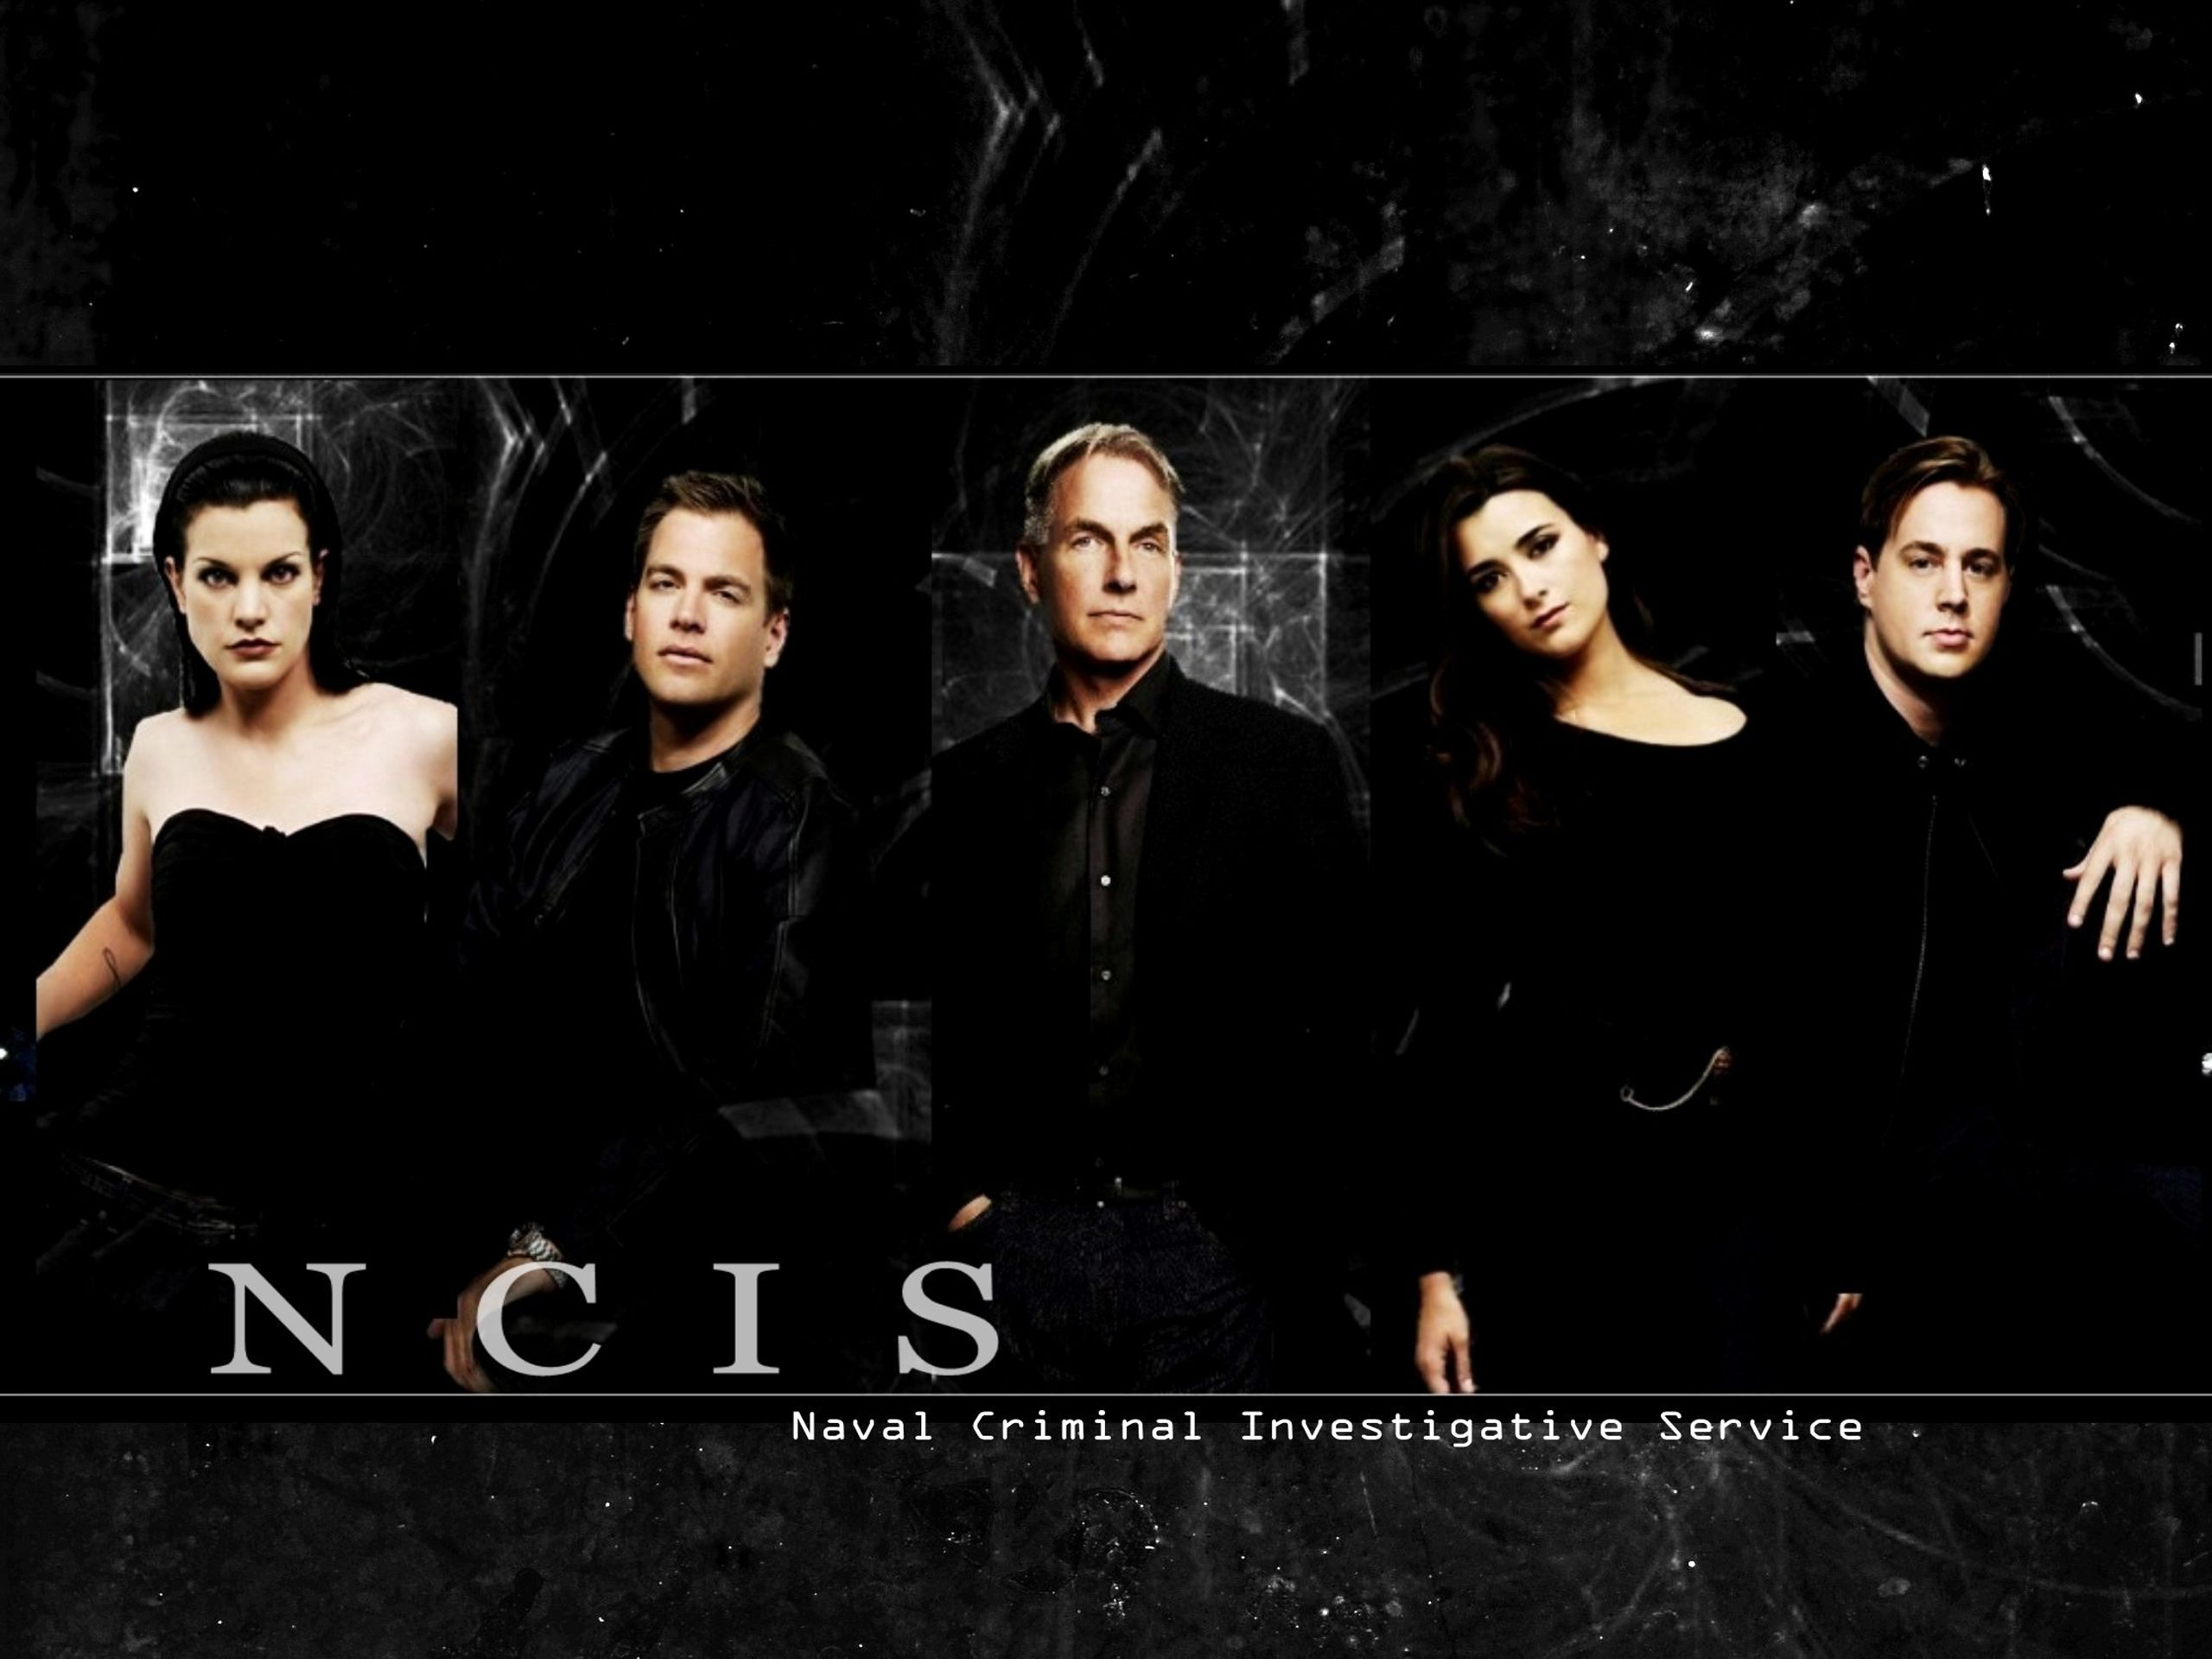 2560x1920 Ncis   Free Desktop Wallpapers for Widescreen, HD and Mobile